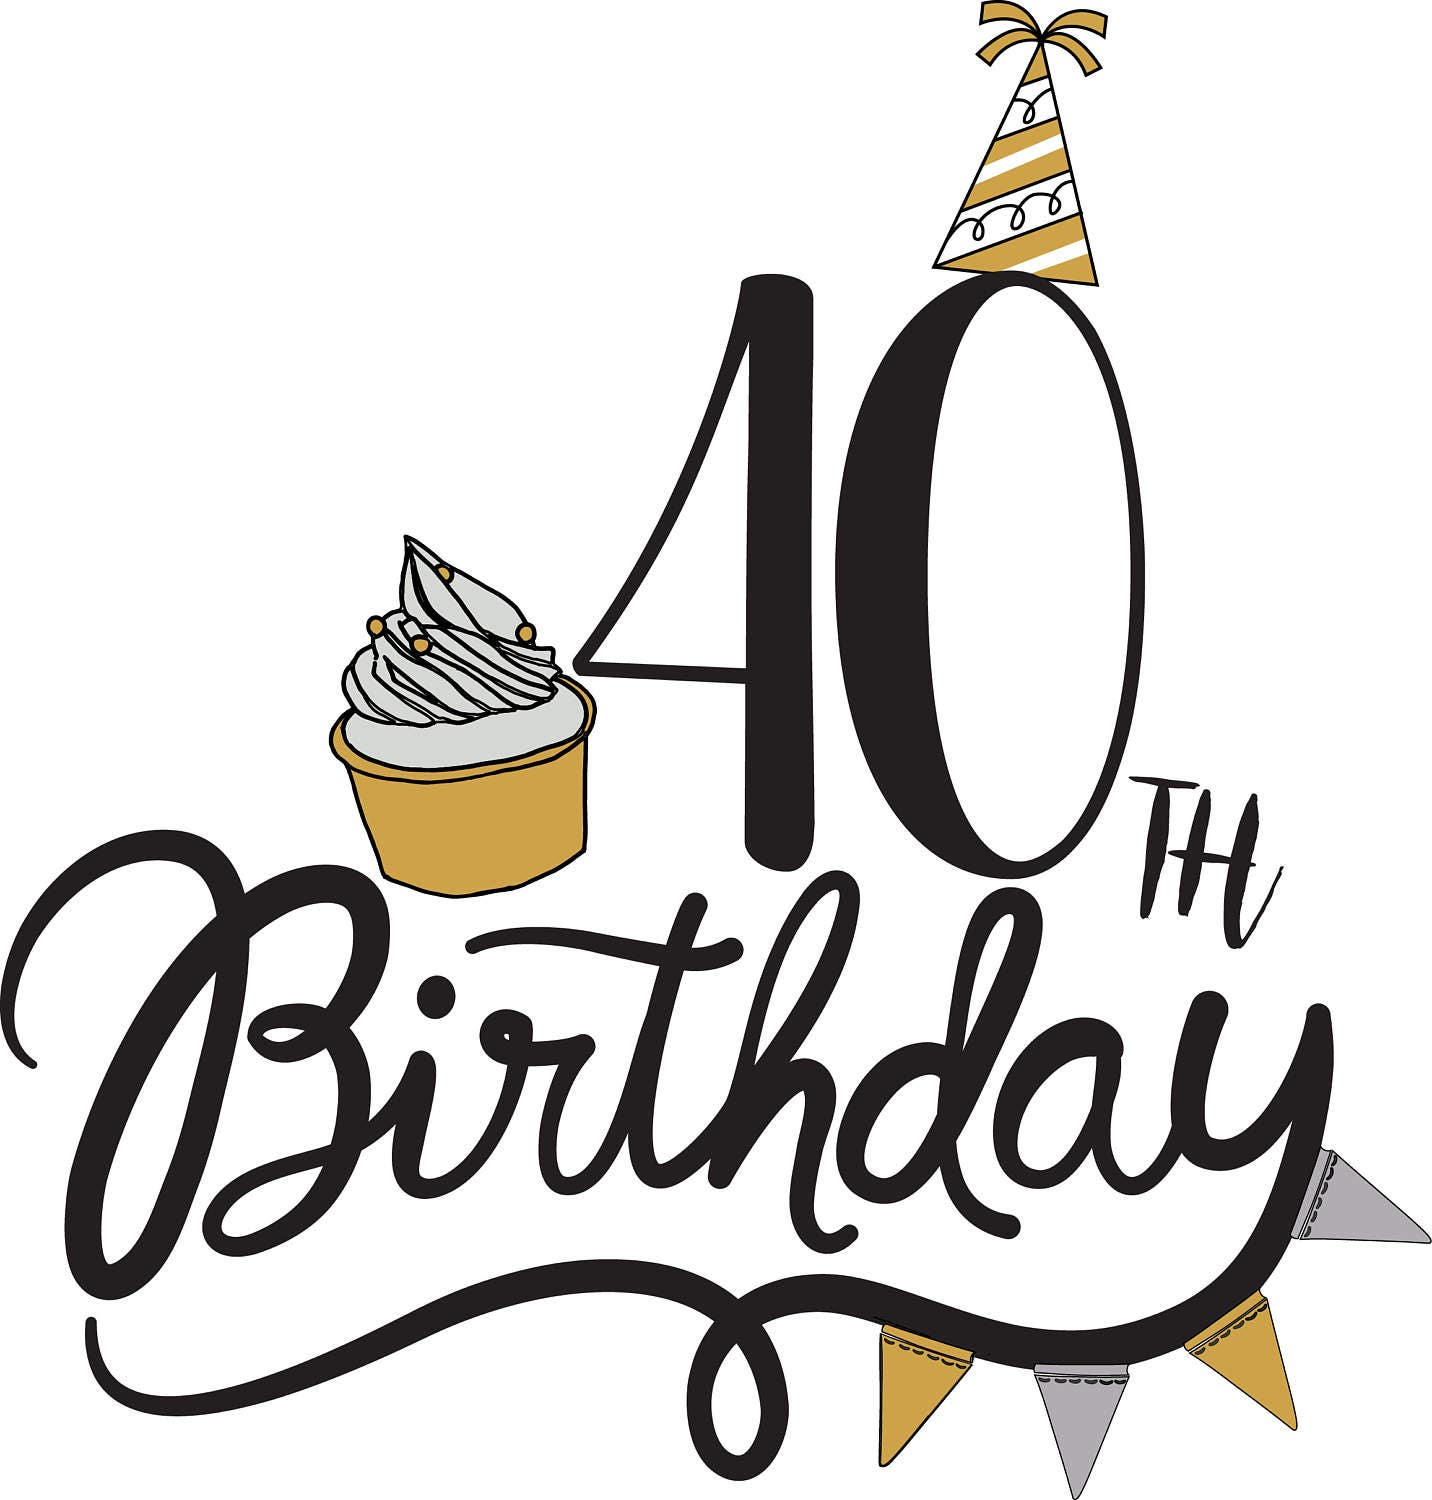 40th birthday svg clipart  birthday quote  cupcake svg birthday party clipart black and white birthday party clipart png